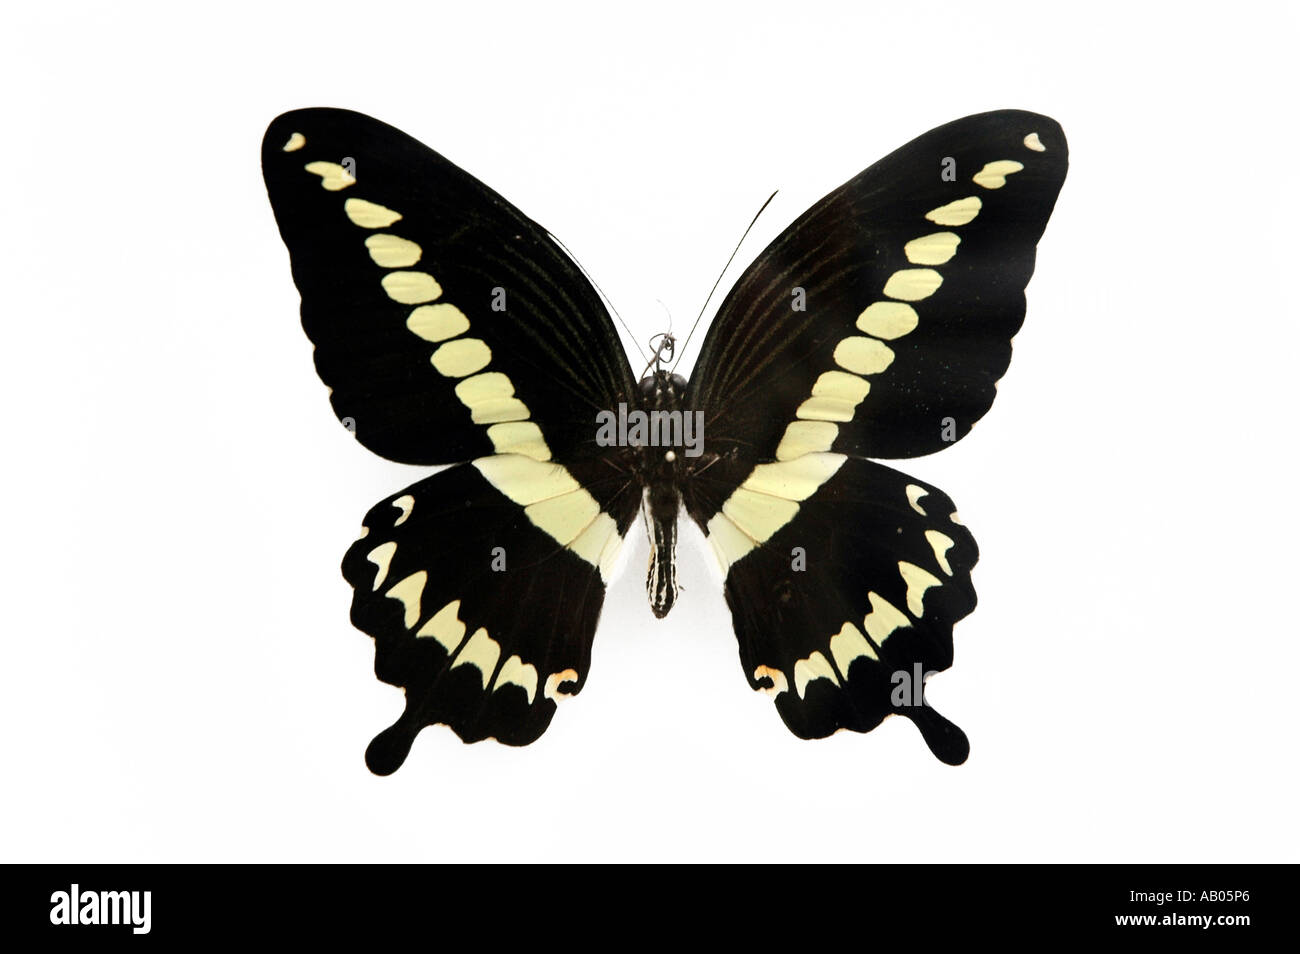 Papilio Gigon from Indonesian island Celebes - Stock Image